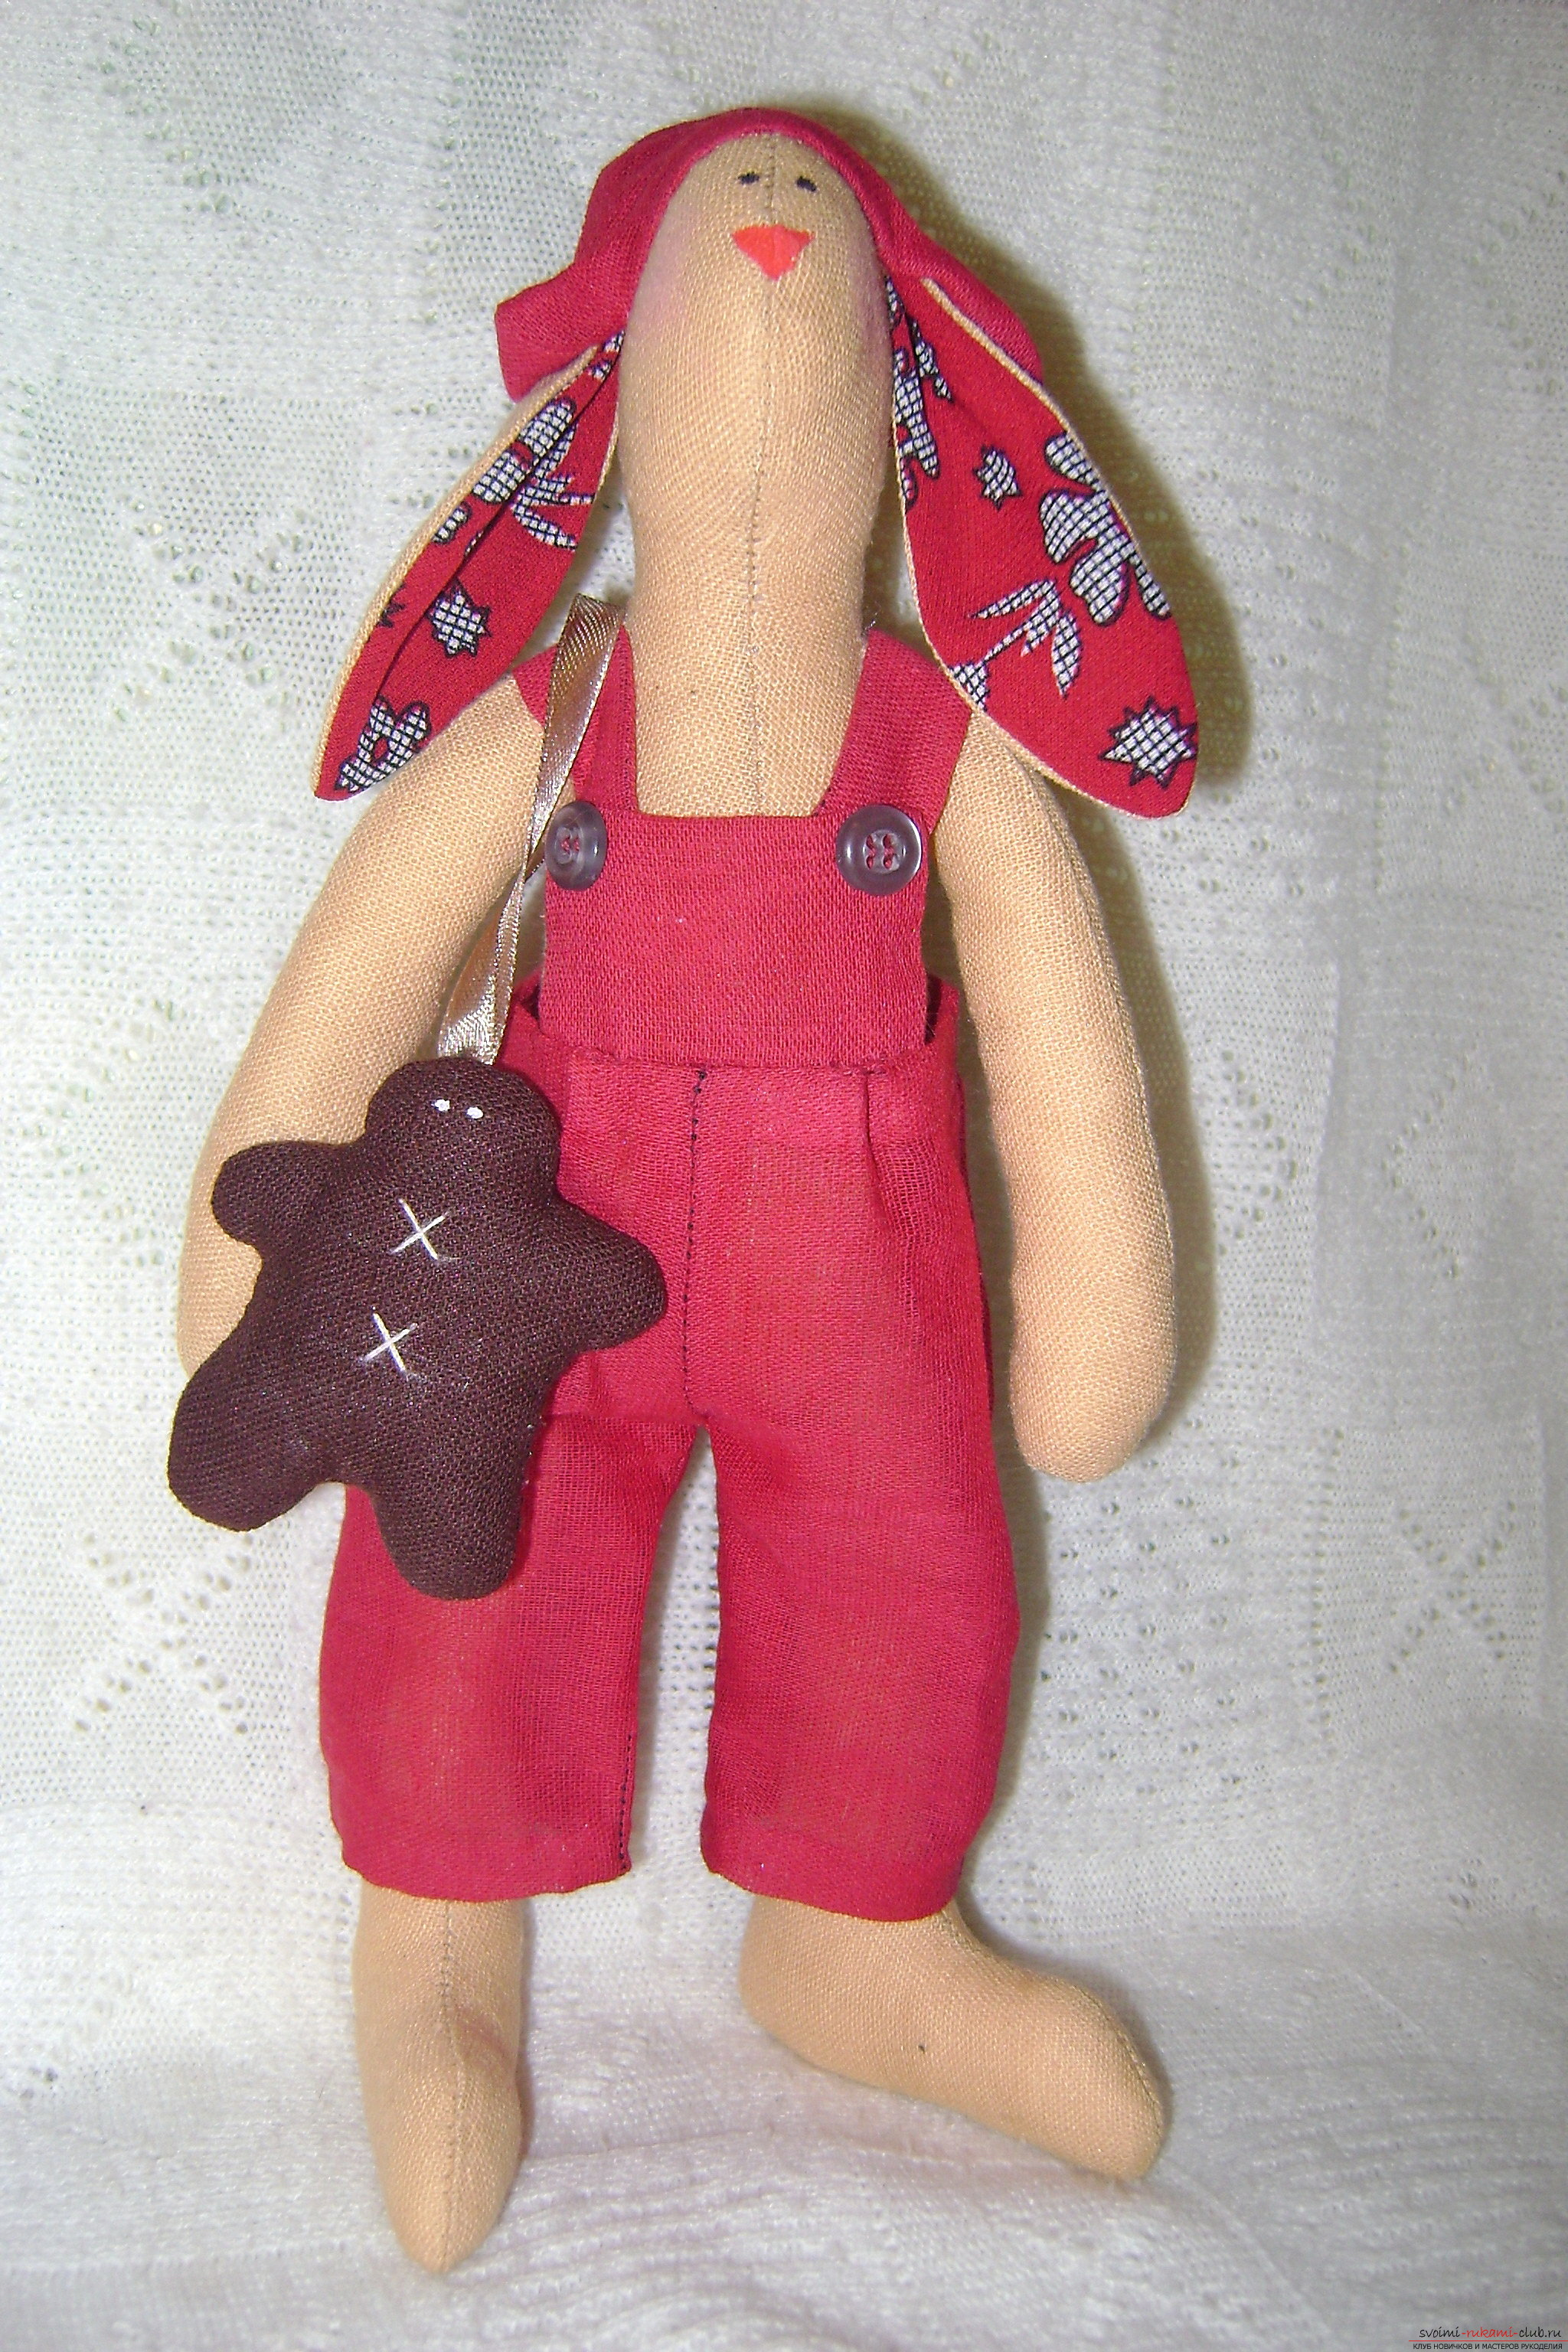 a doll of a tilde. Photo №4